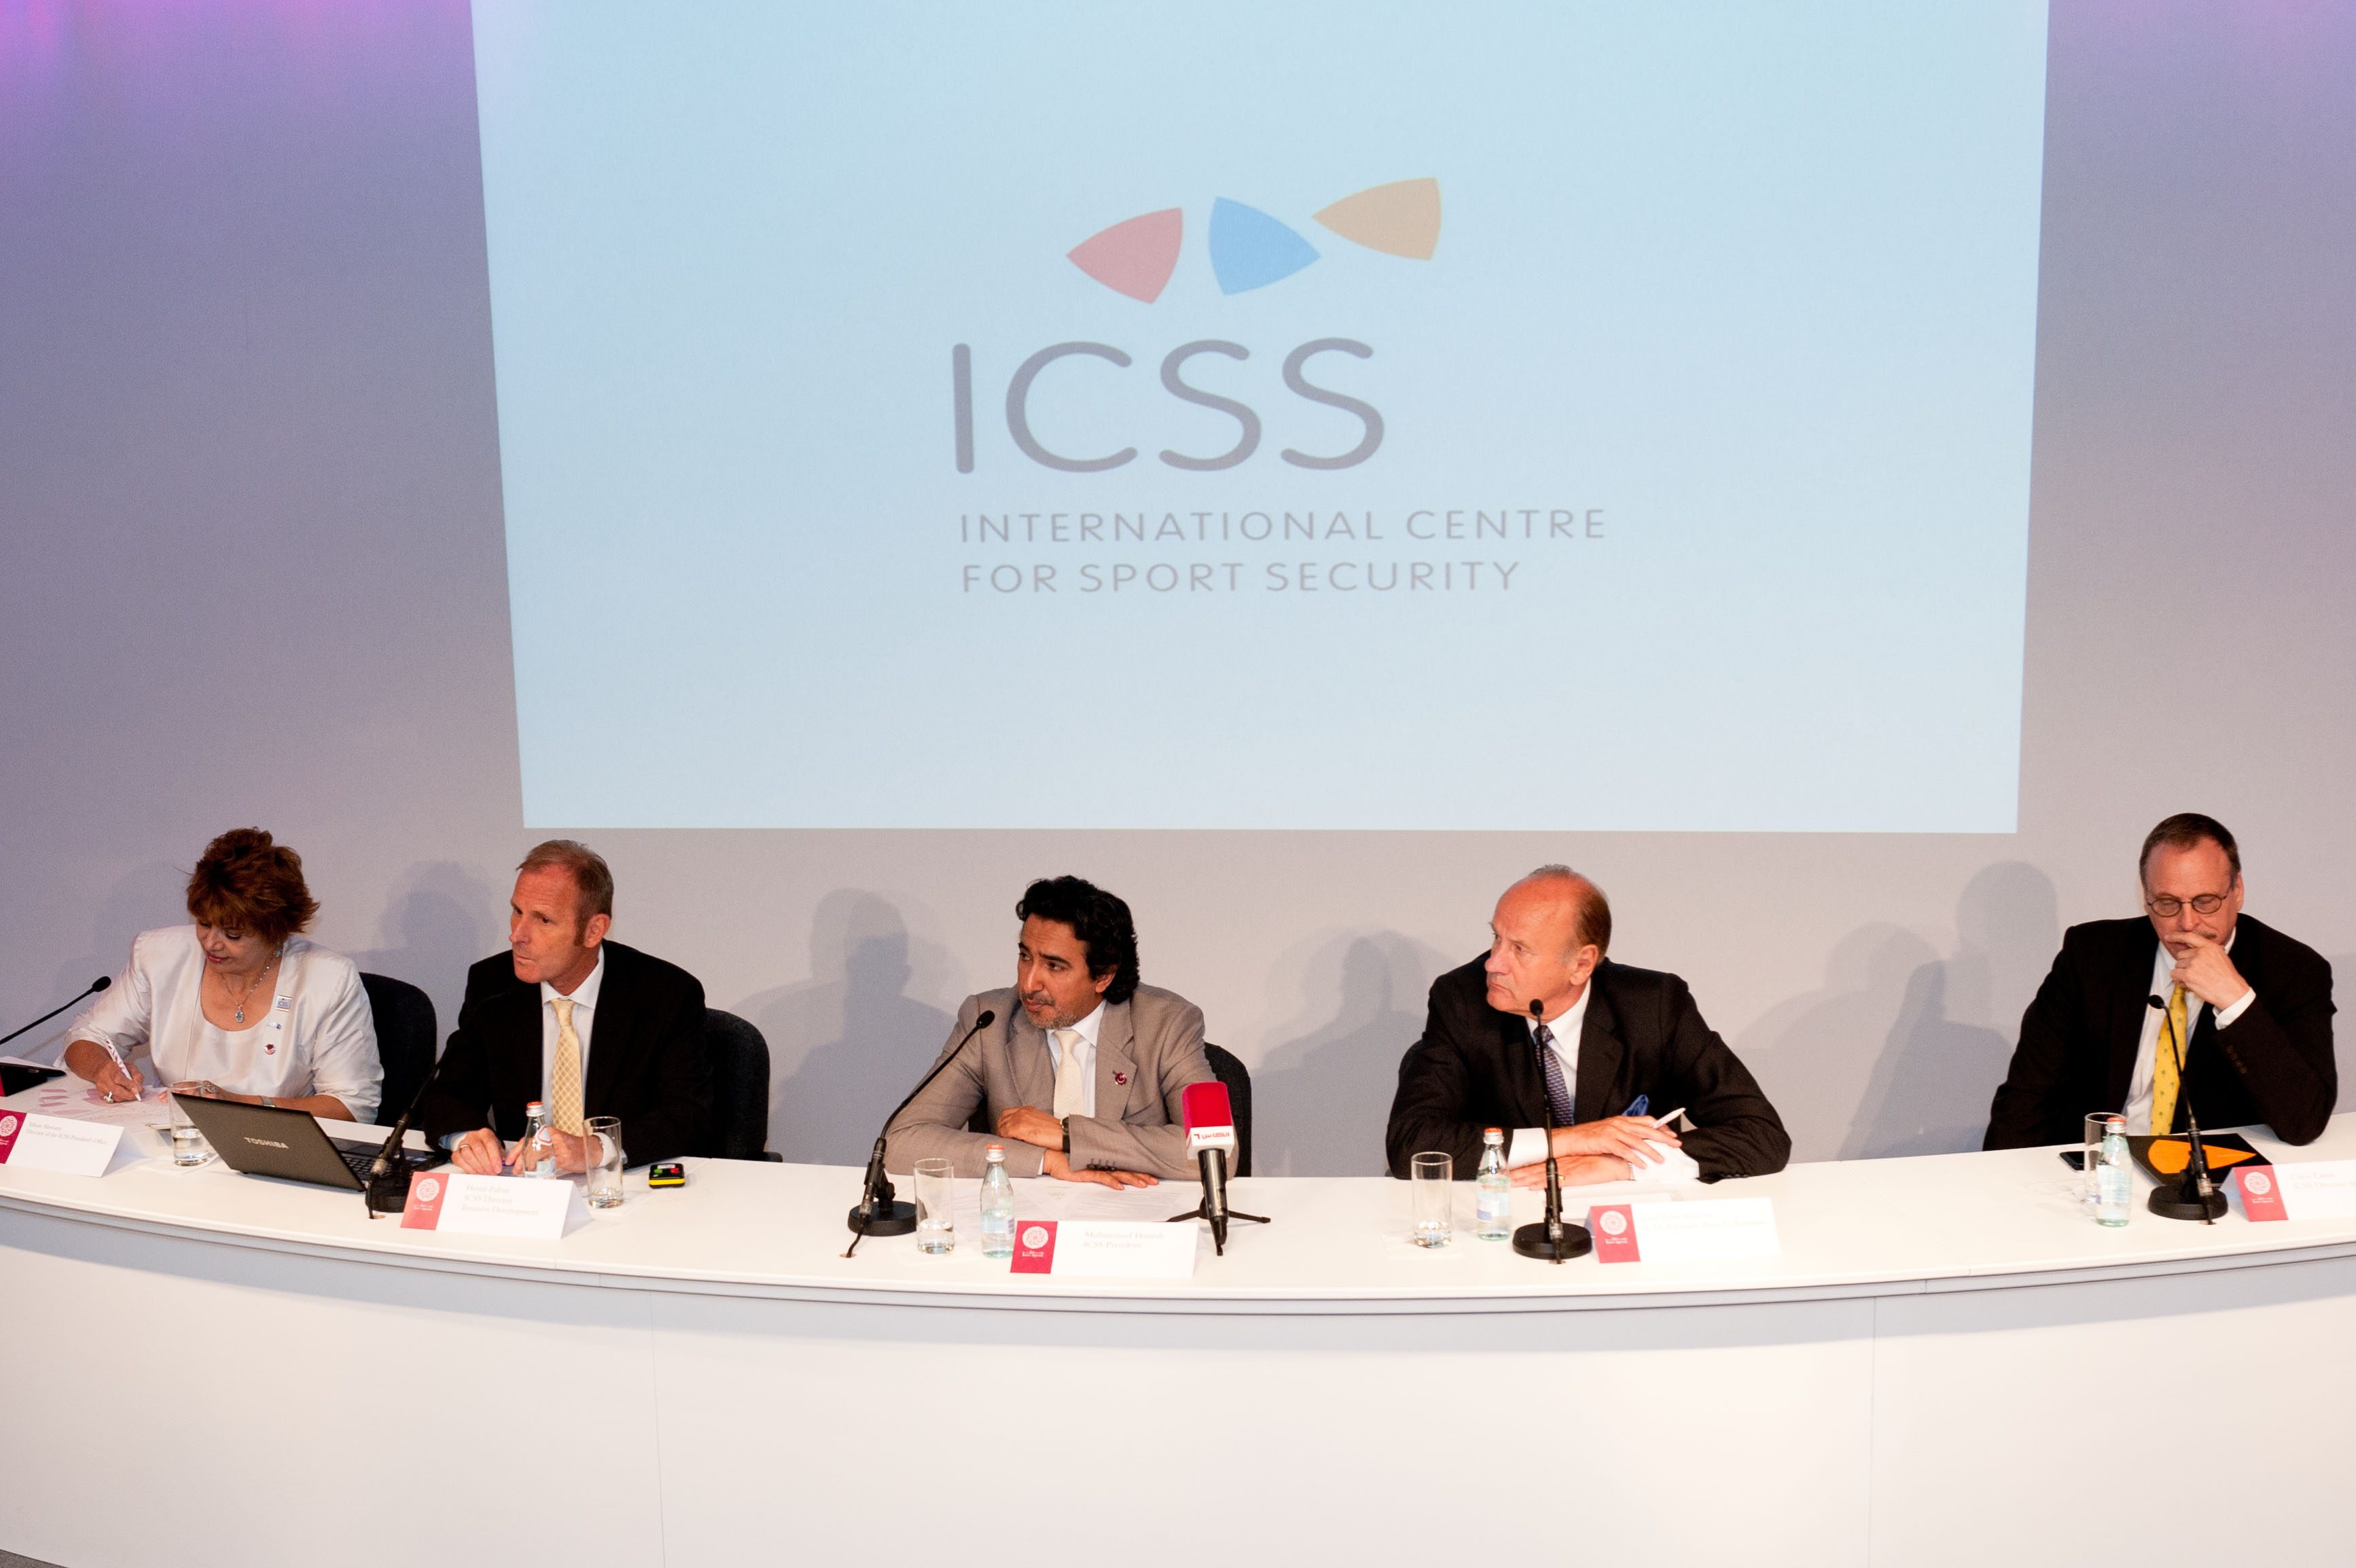 ICSS highlights the global challenge of protecting